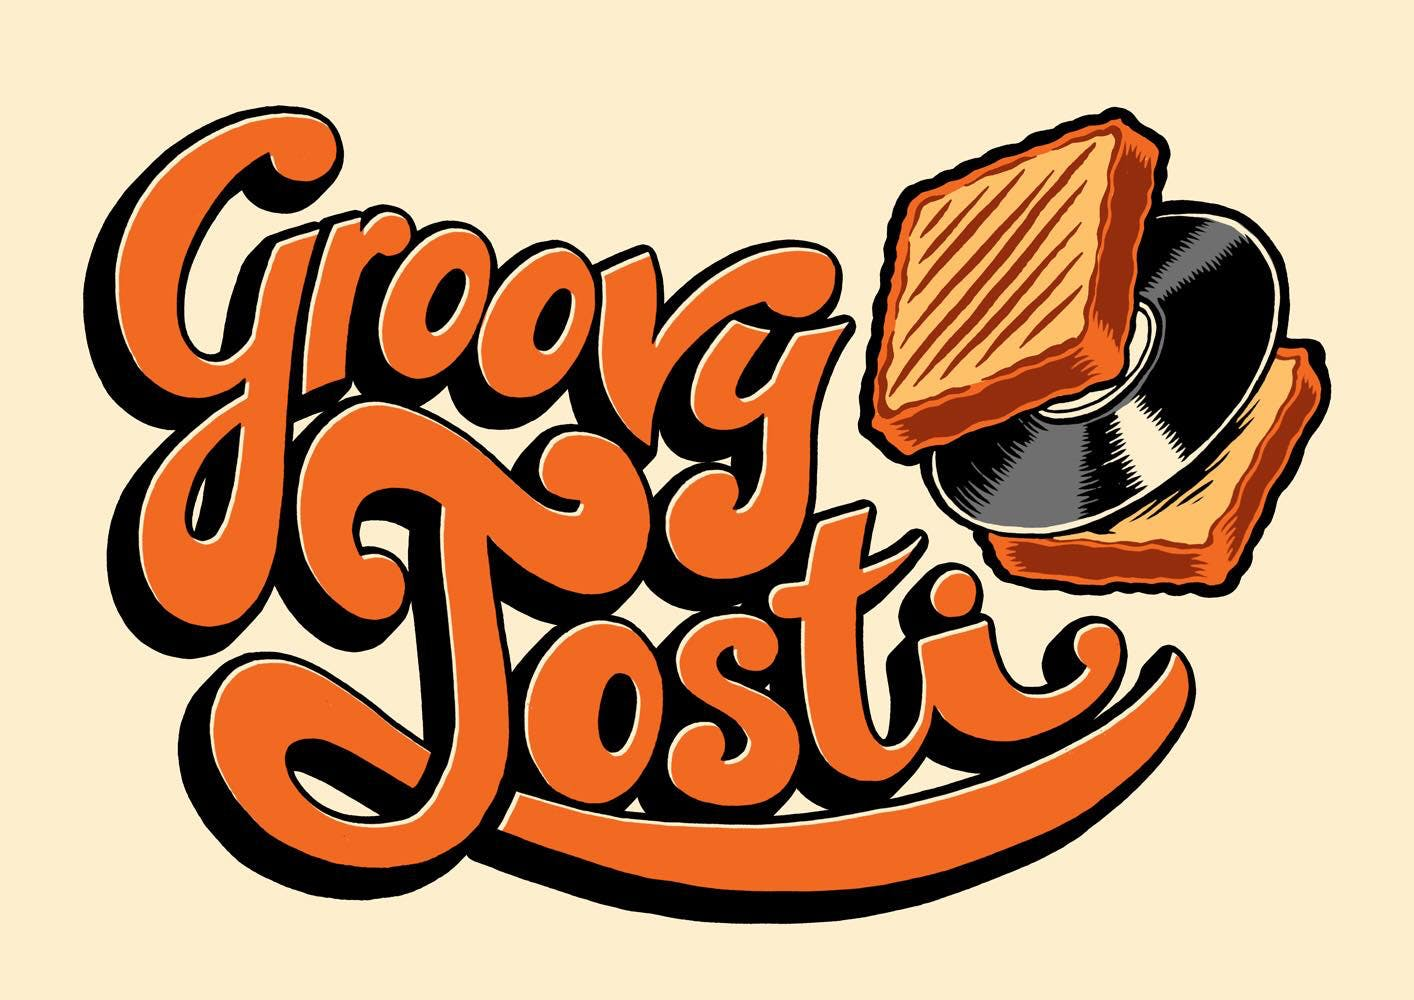 Groovy Tosti - Record Store Image